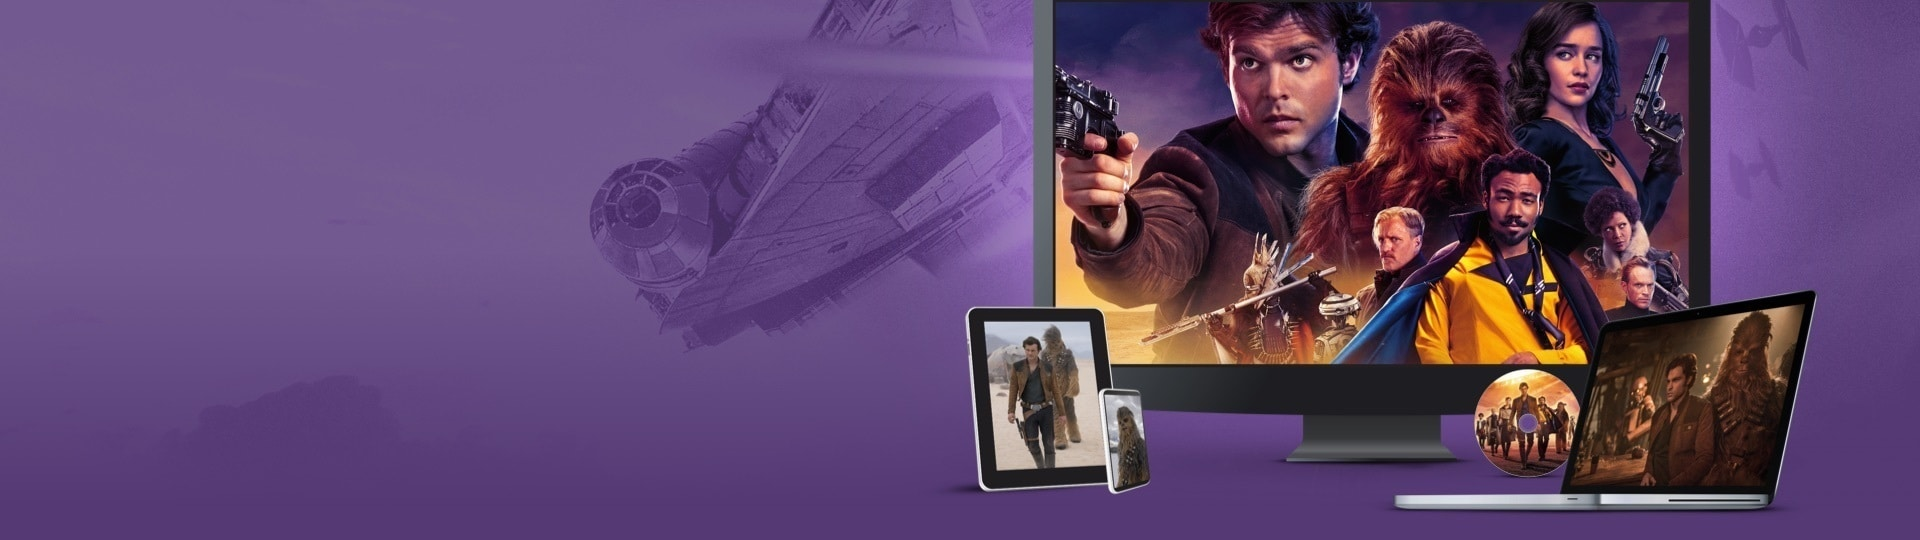 Solo : A Star Wars Story | Home Ent